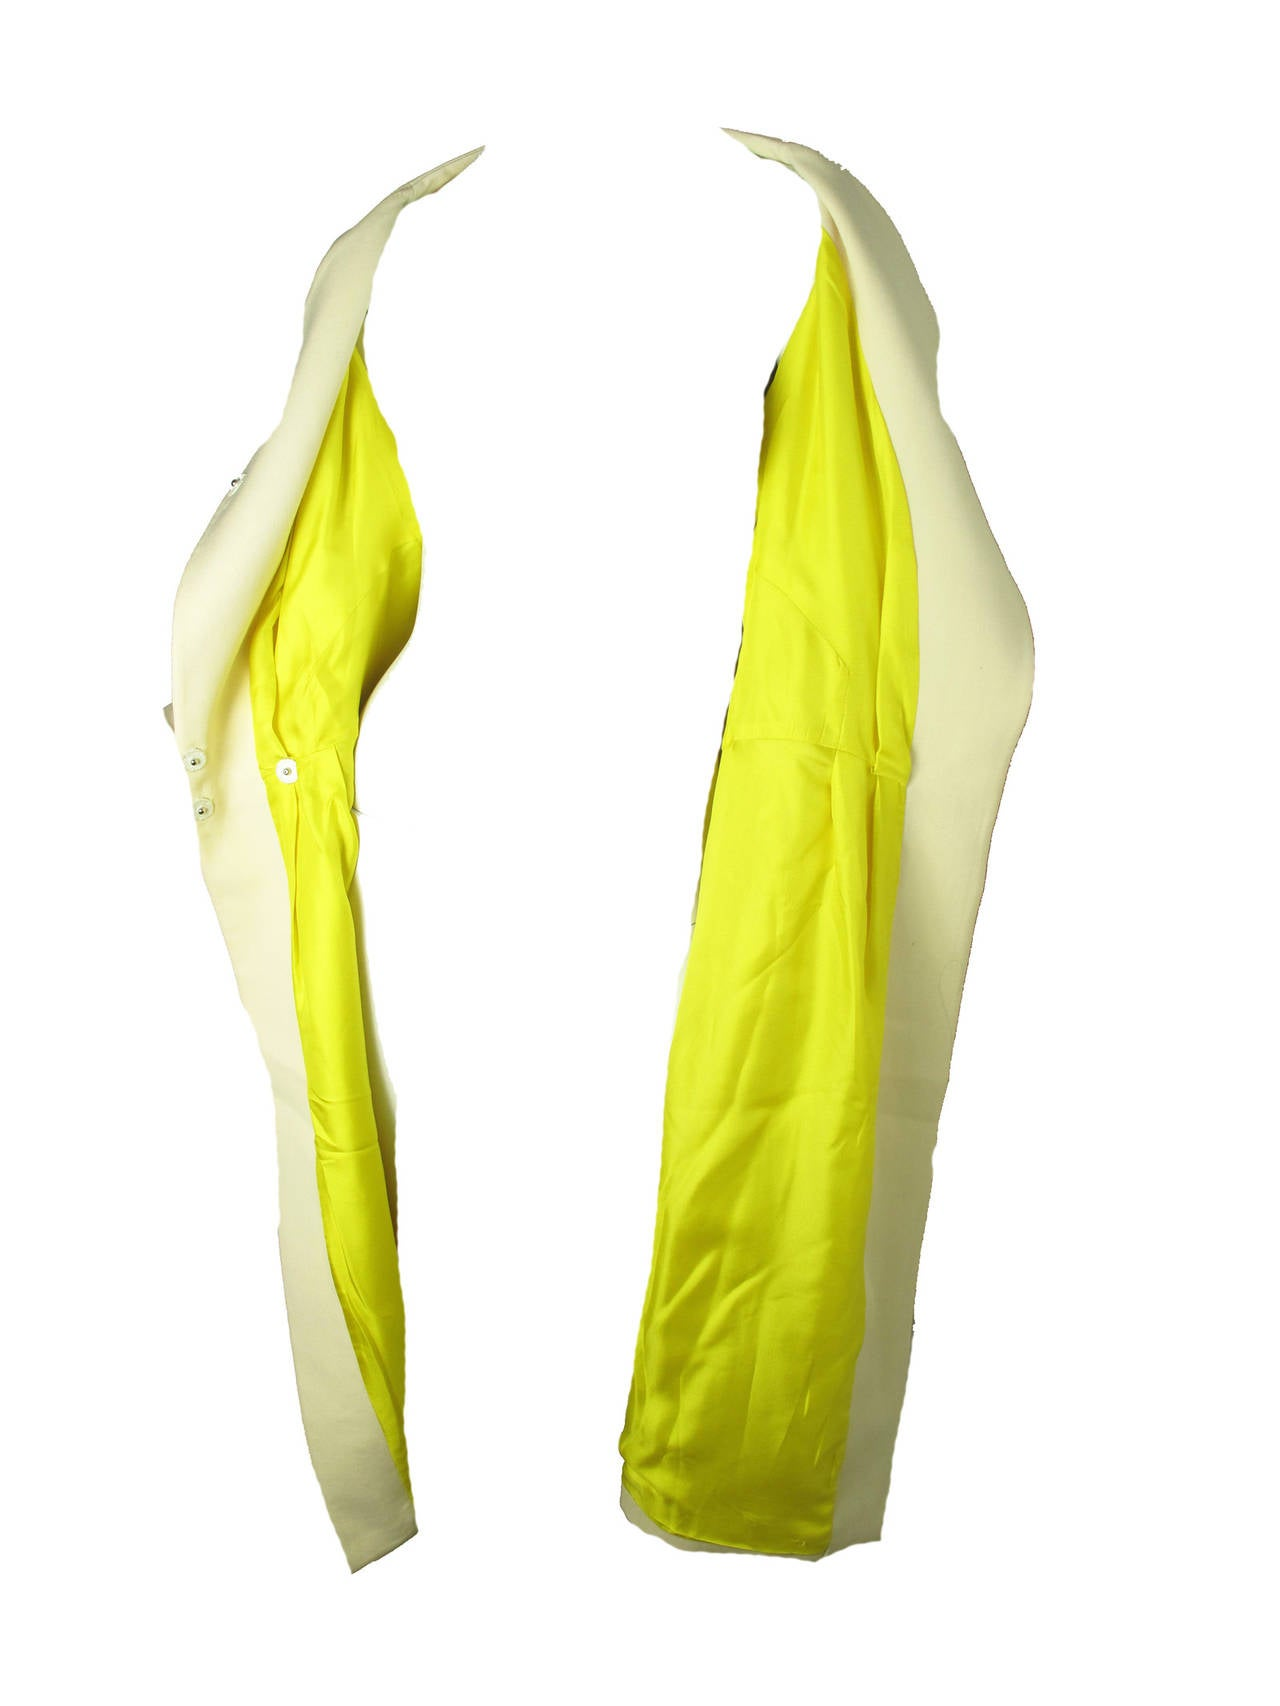 Ungaro Wool Coat Bright Yellow Silk Lining In Good Condition For Sale In Austin, TX